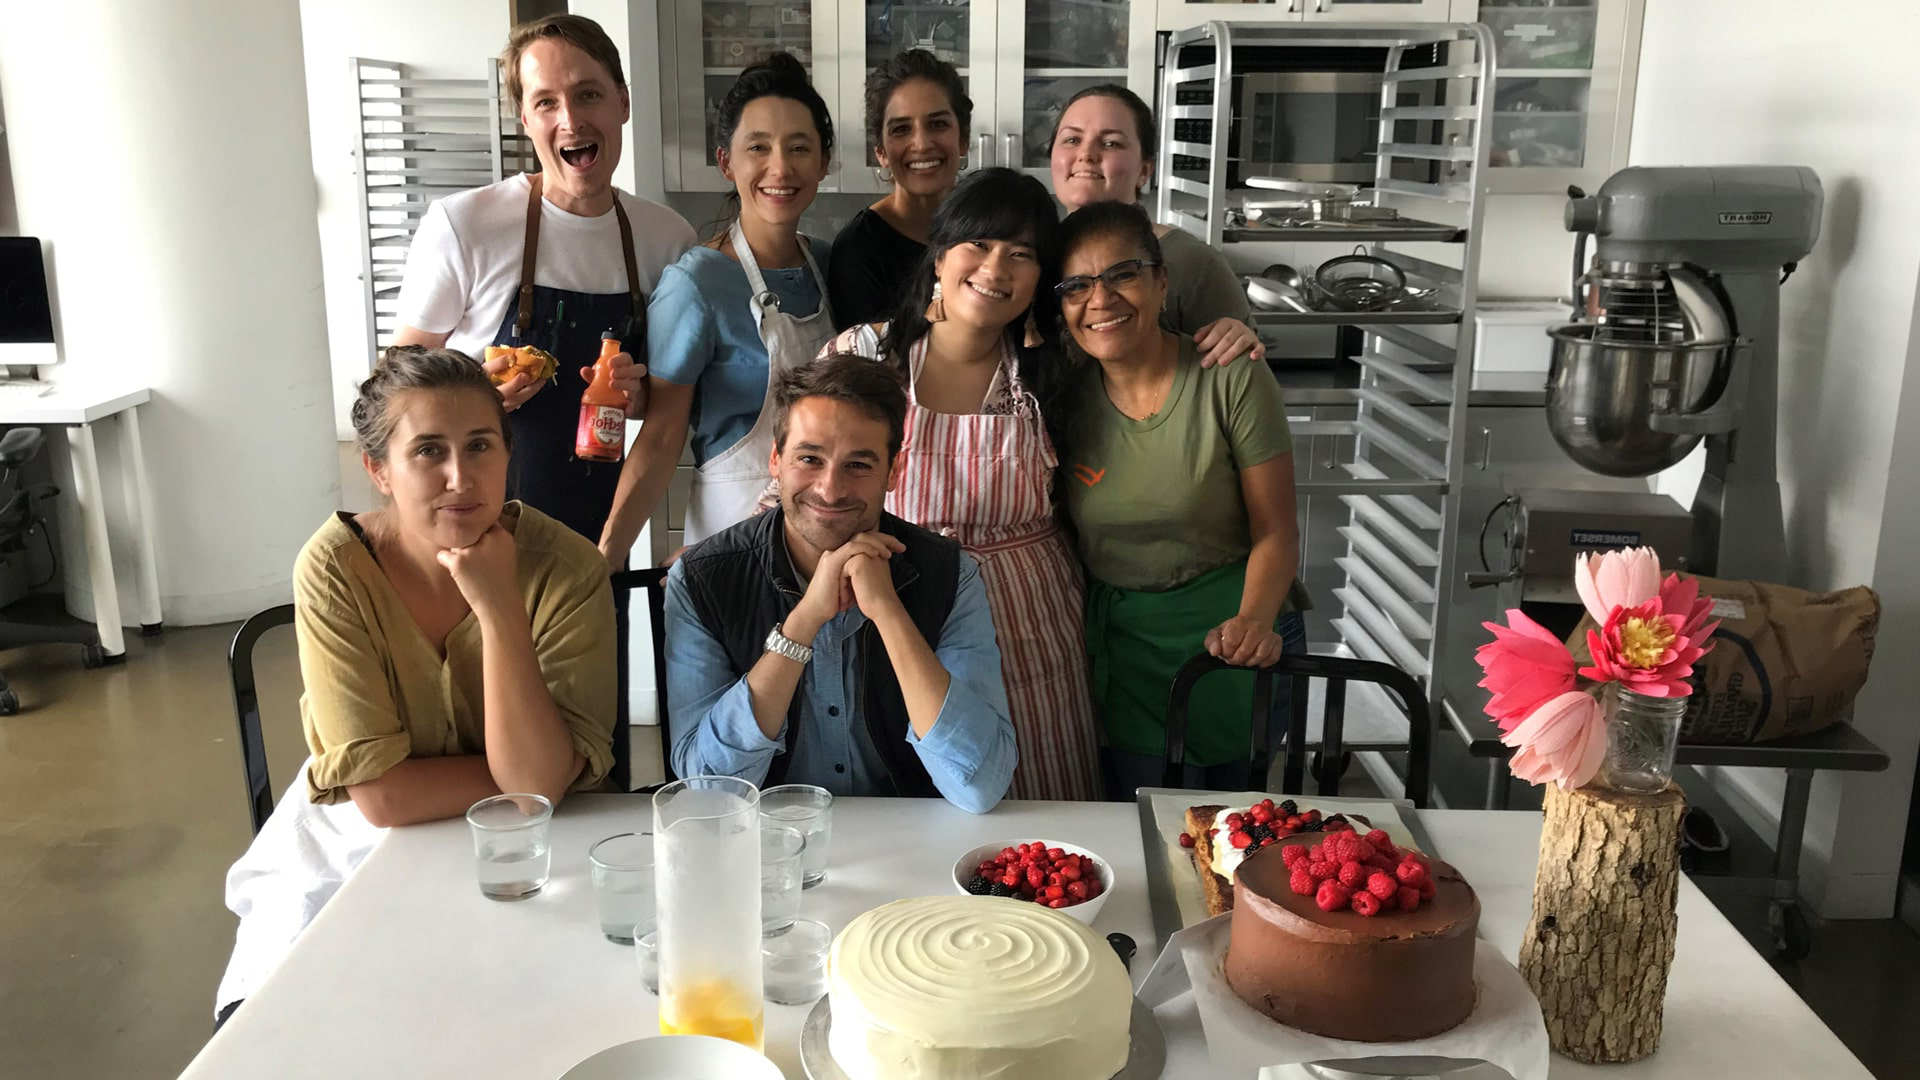 Kayla (center middle) with Kavita Thirupuvanam (far left), Thomas Joseph '06 (center front) and the rest of the Kitchen crew.